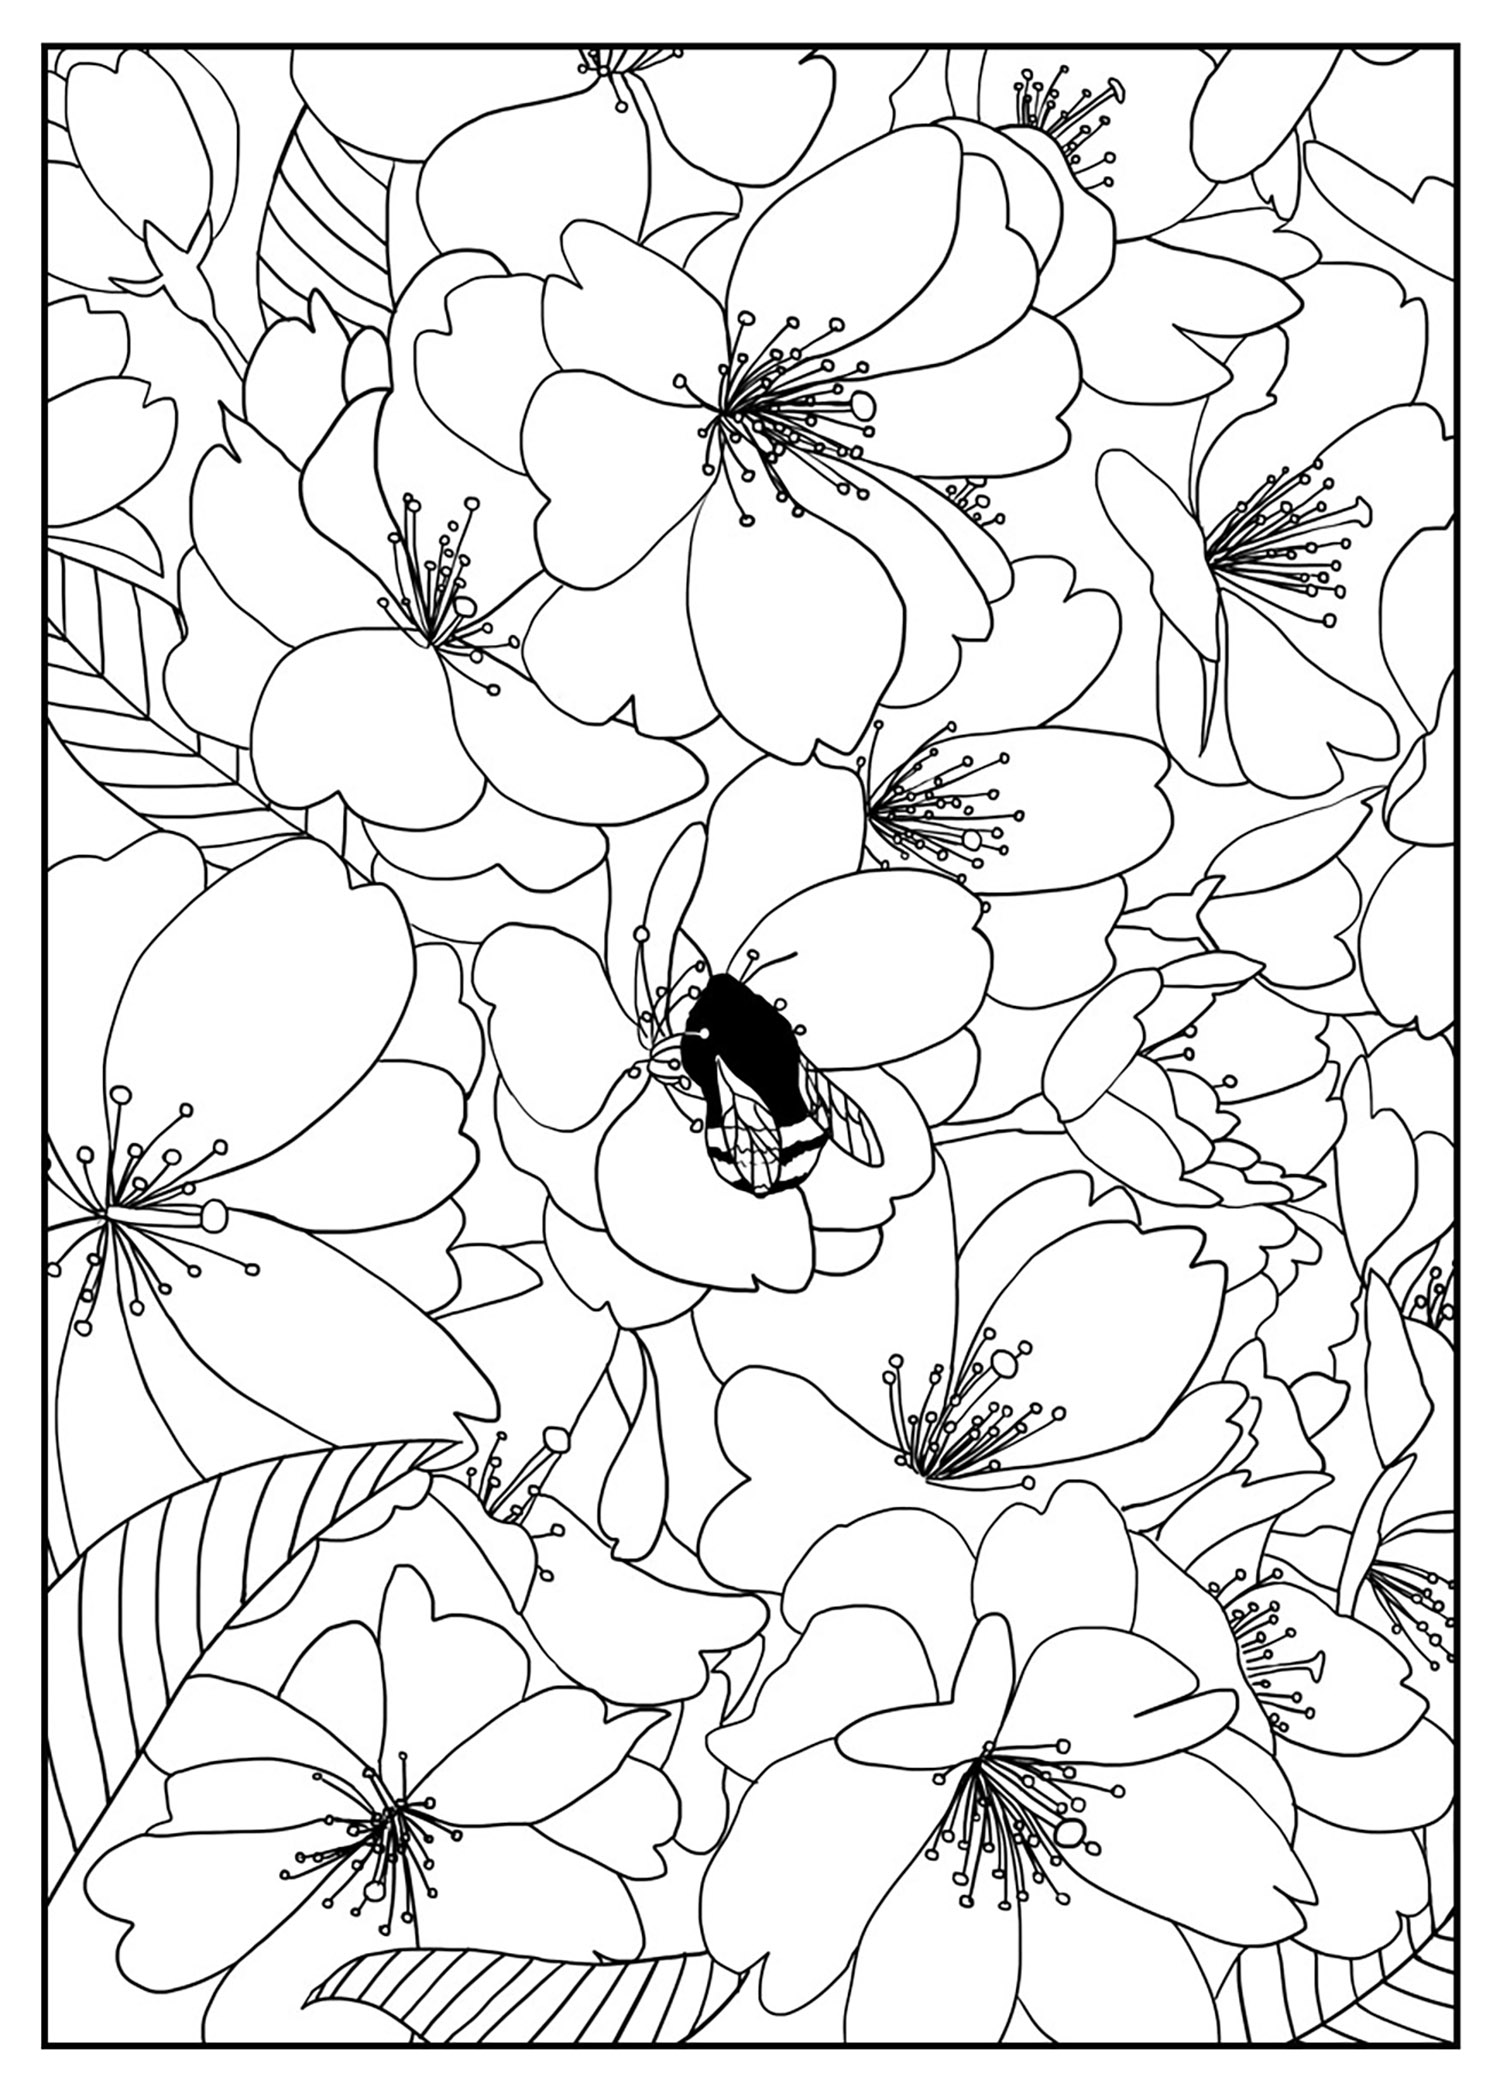 pictures of flowers to color free printables beautiful printable flowers coloring pages flowers color of printables to free pictures